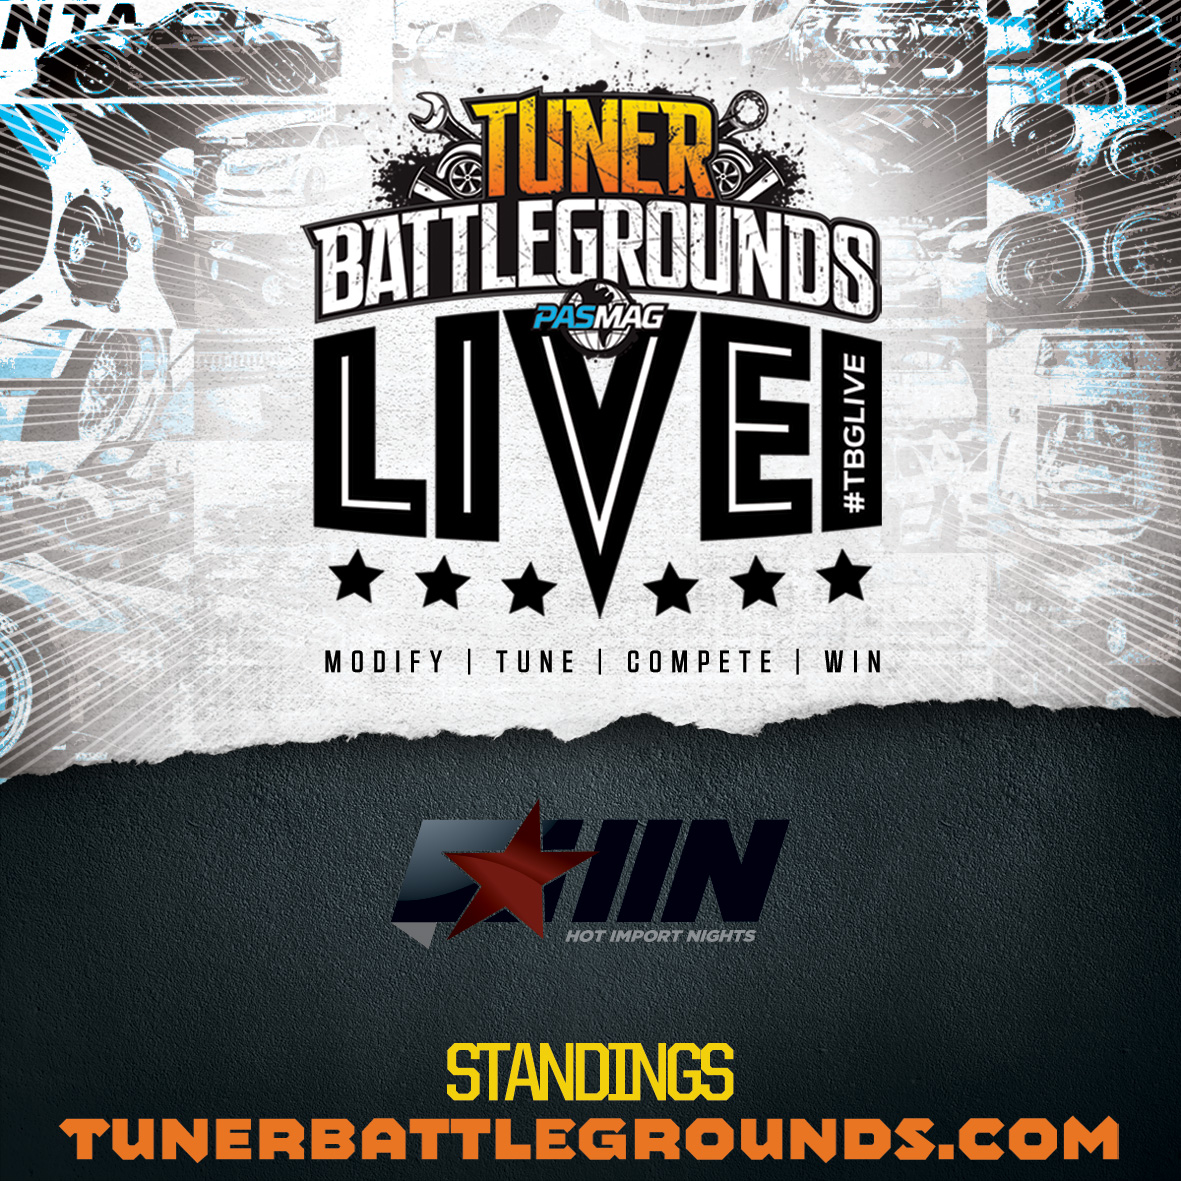 TBGLIVE HIN Standings